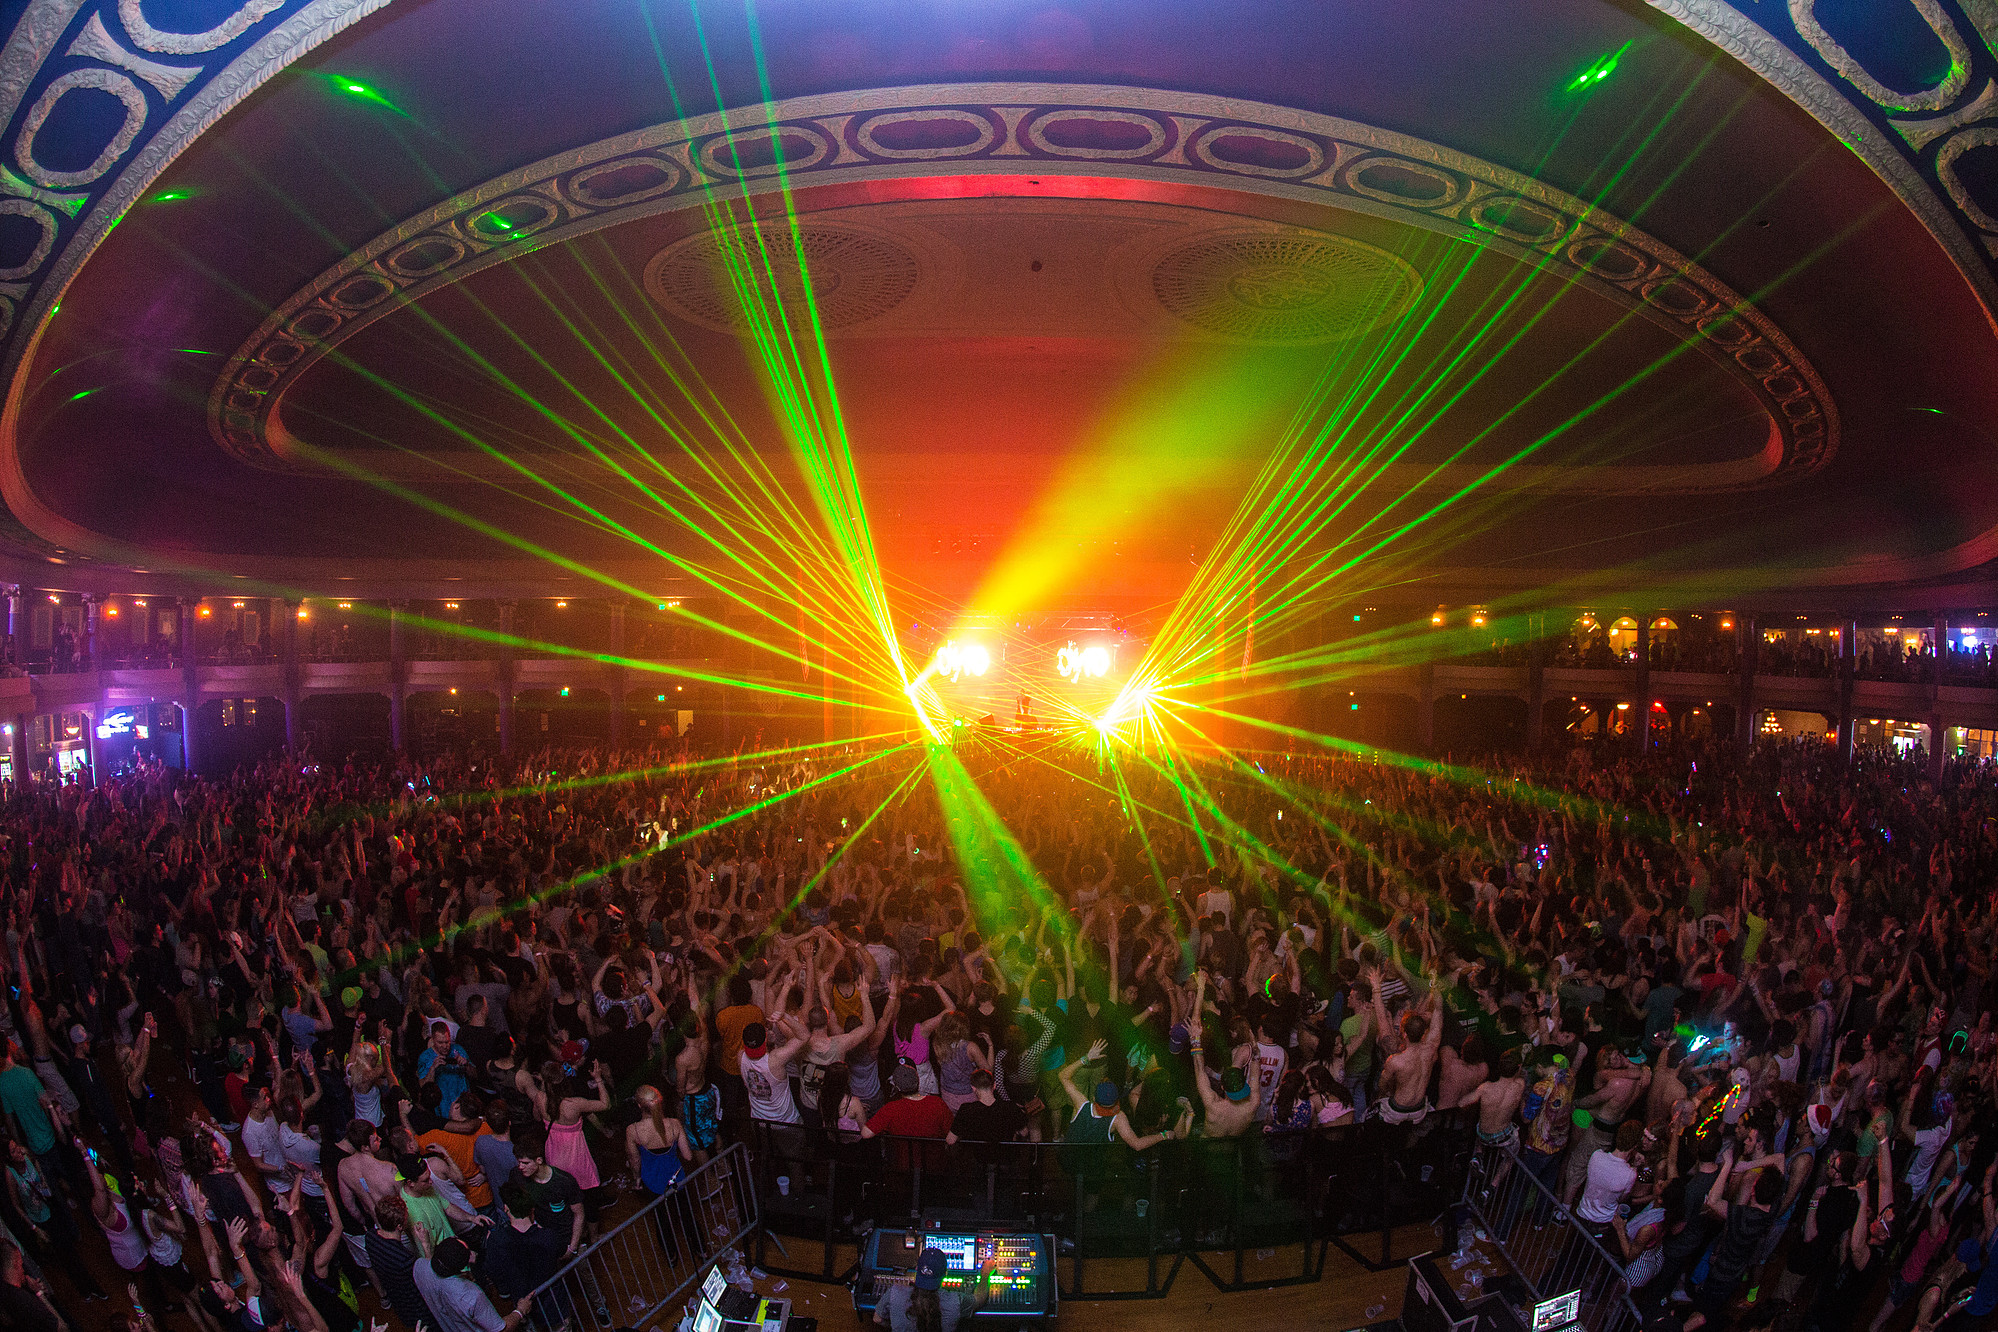 Eagles Club Concert Lasers for Hardwell